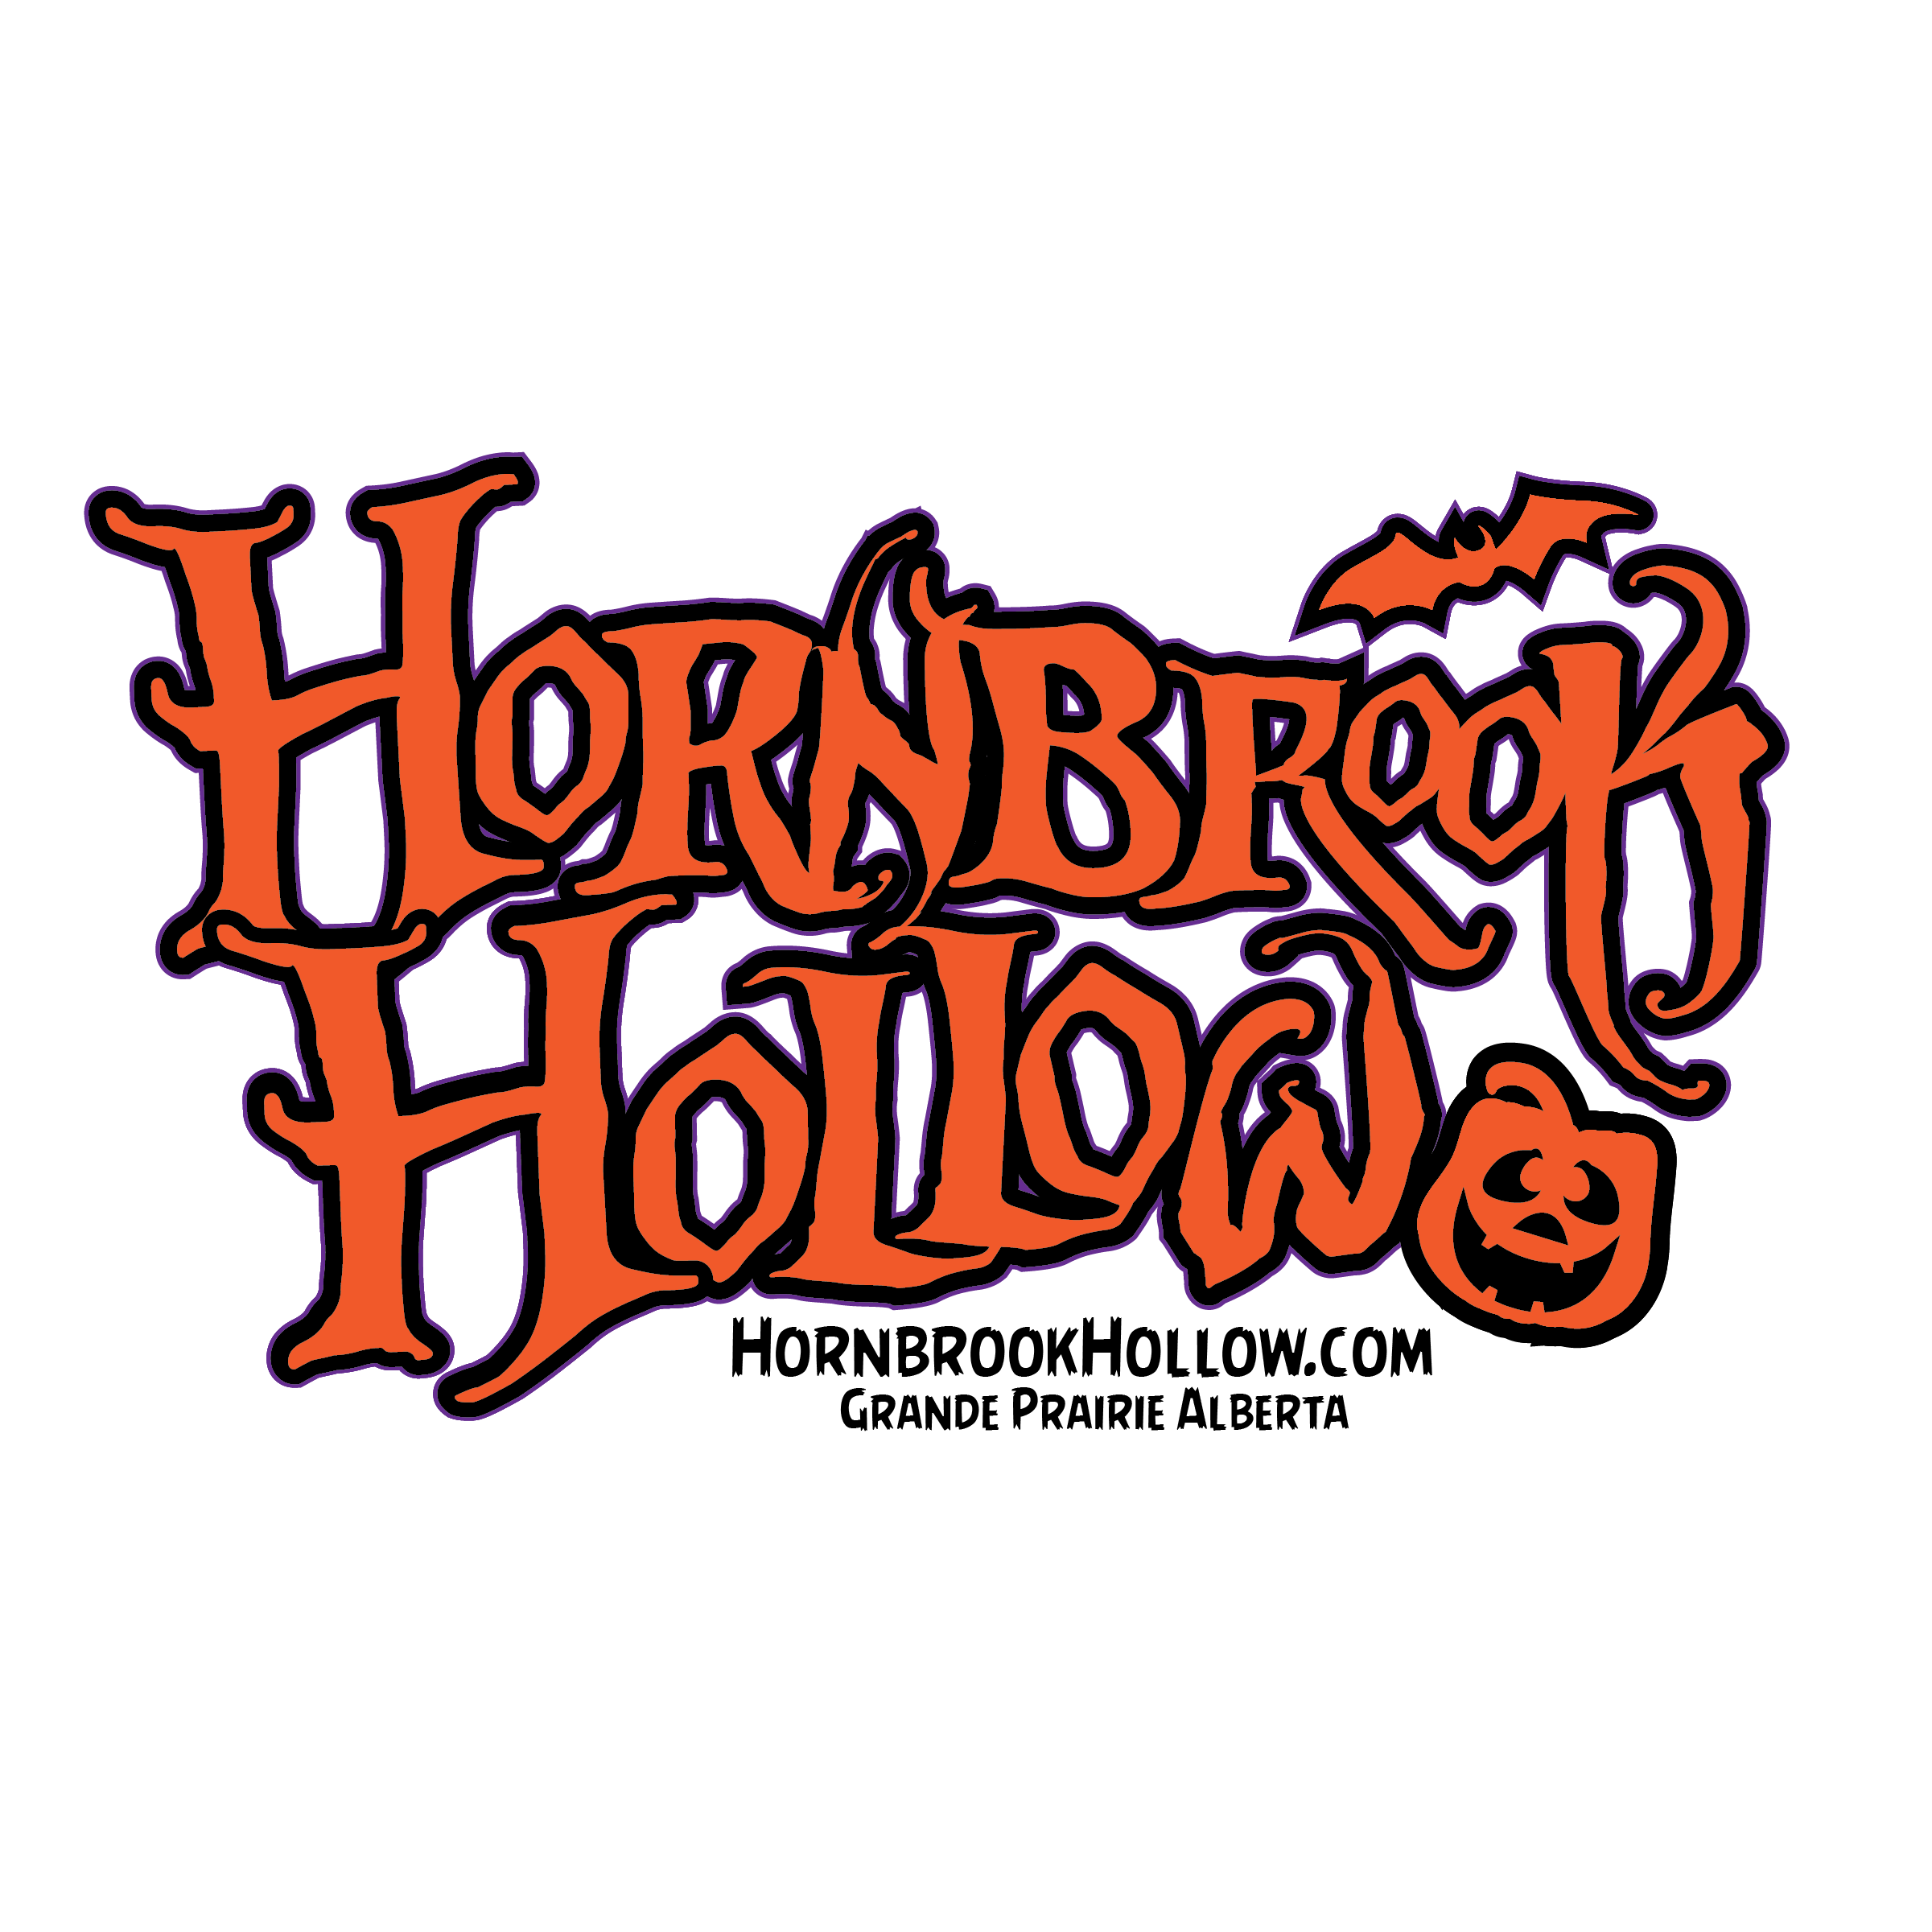 Hornbrook Hollow - MiniGlow Golf | GP FunHouse | Grovedale Haunt